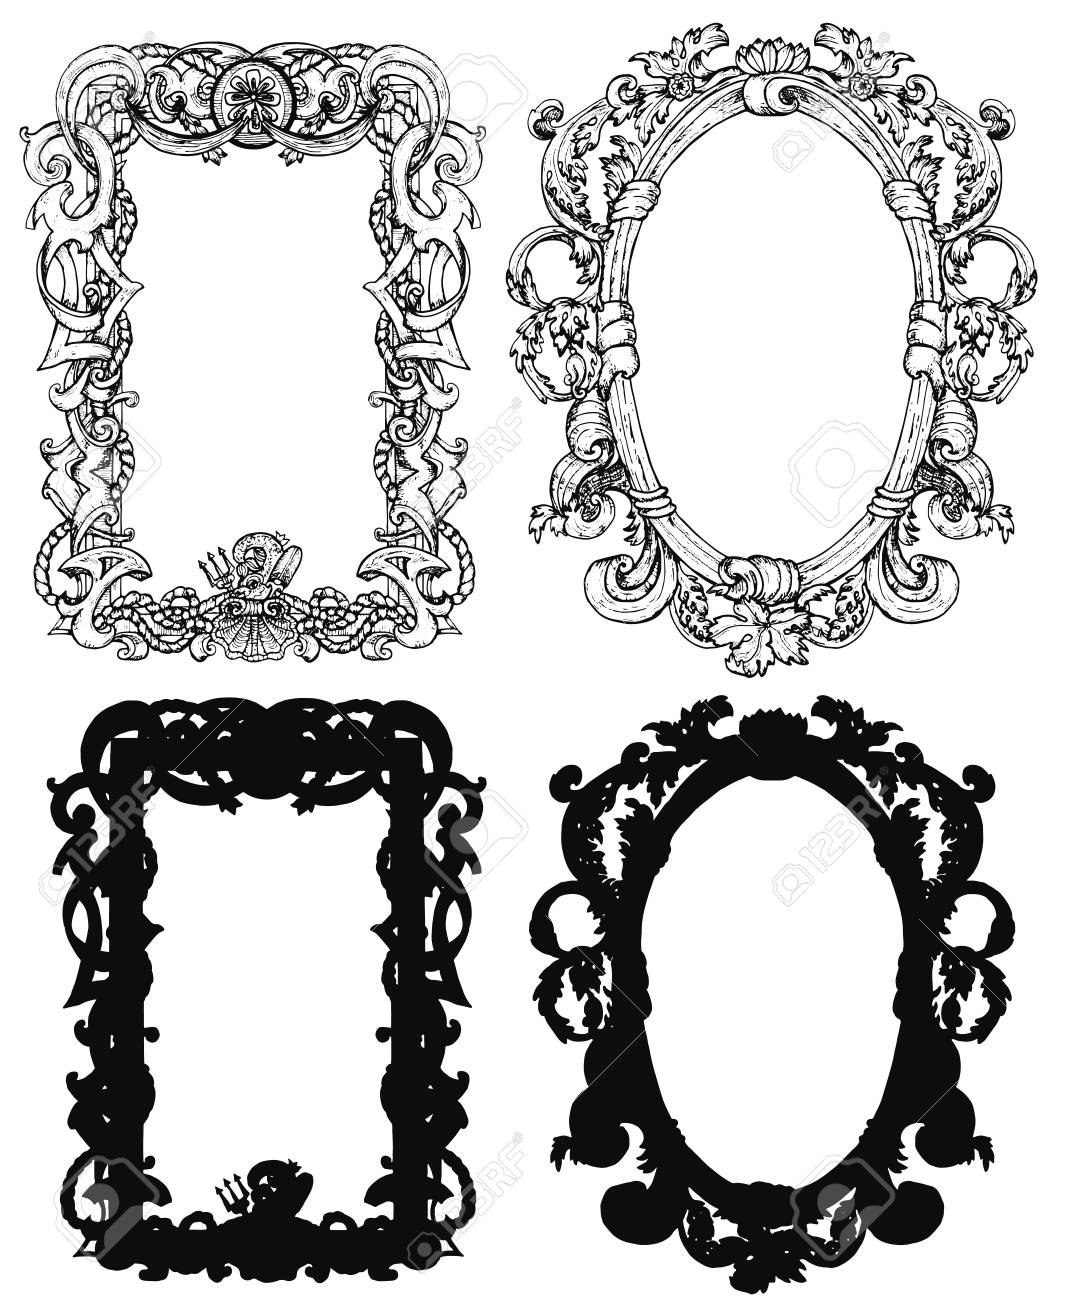 Design Set With Antique Baroque Frames In Victorian Style Isolated Royalty Free Cliparts Vectors And Stock Illustration Image 118954519